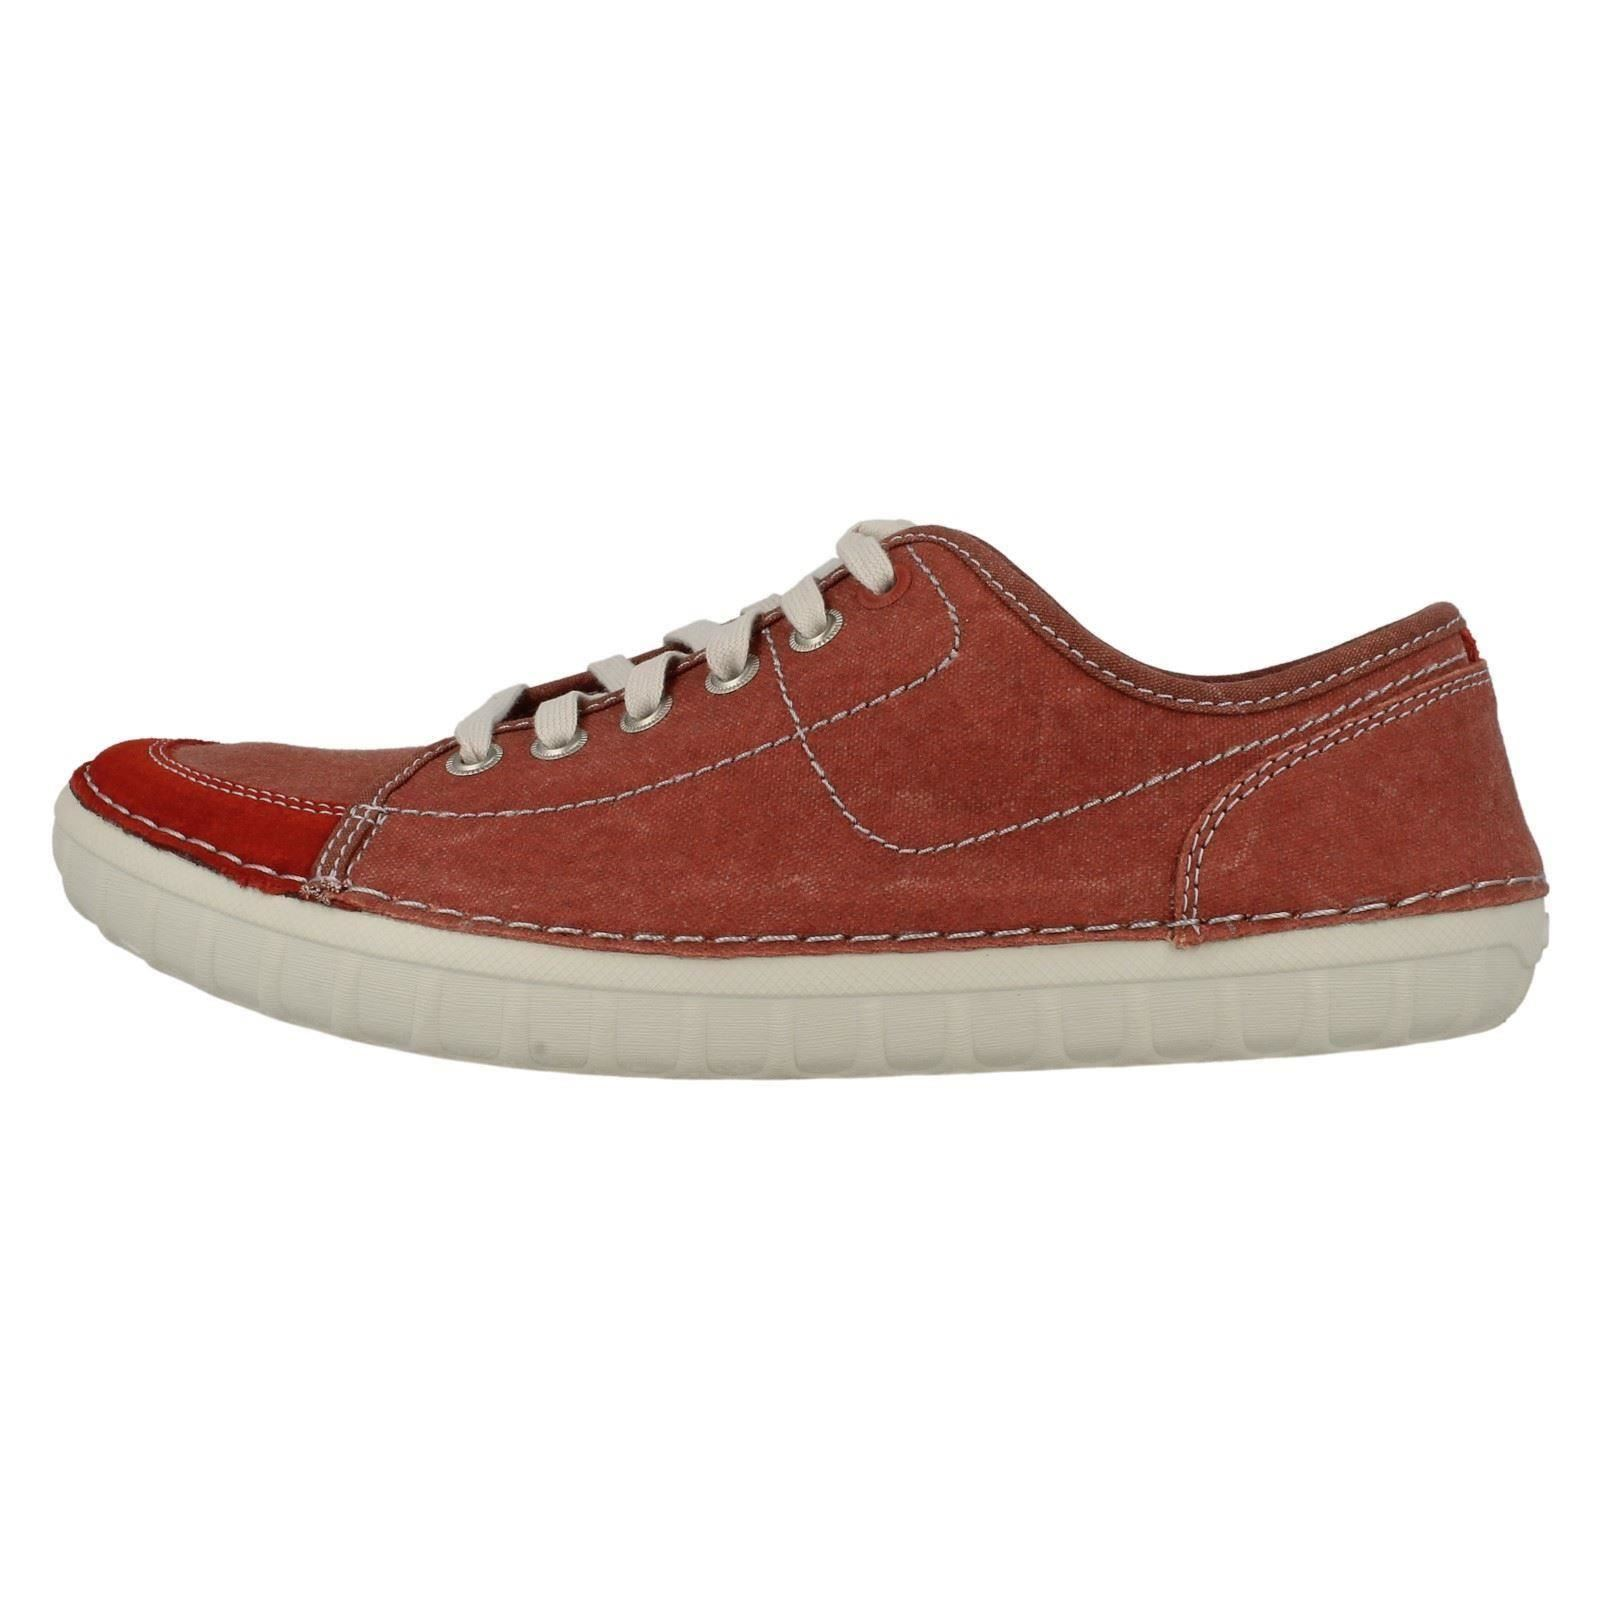 mens clarks canvas lace up shoes kornel row ebay